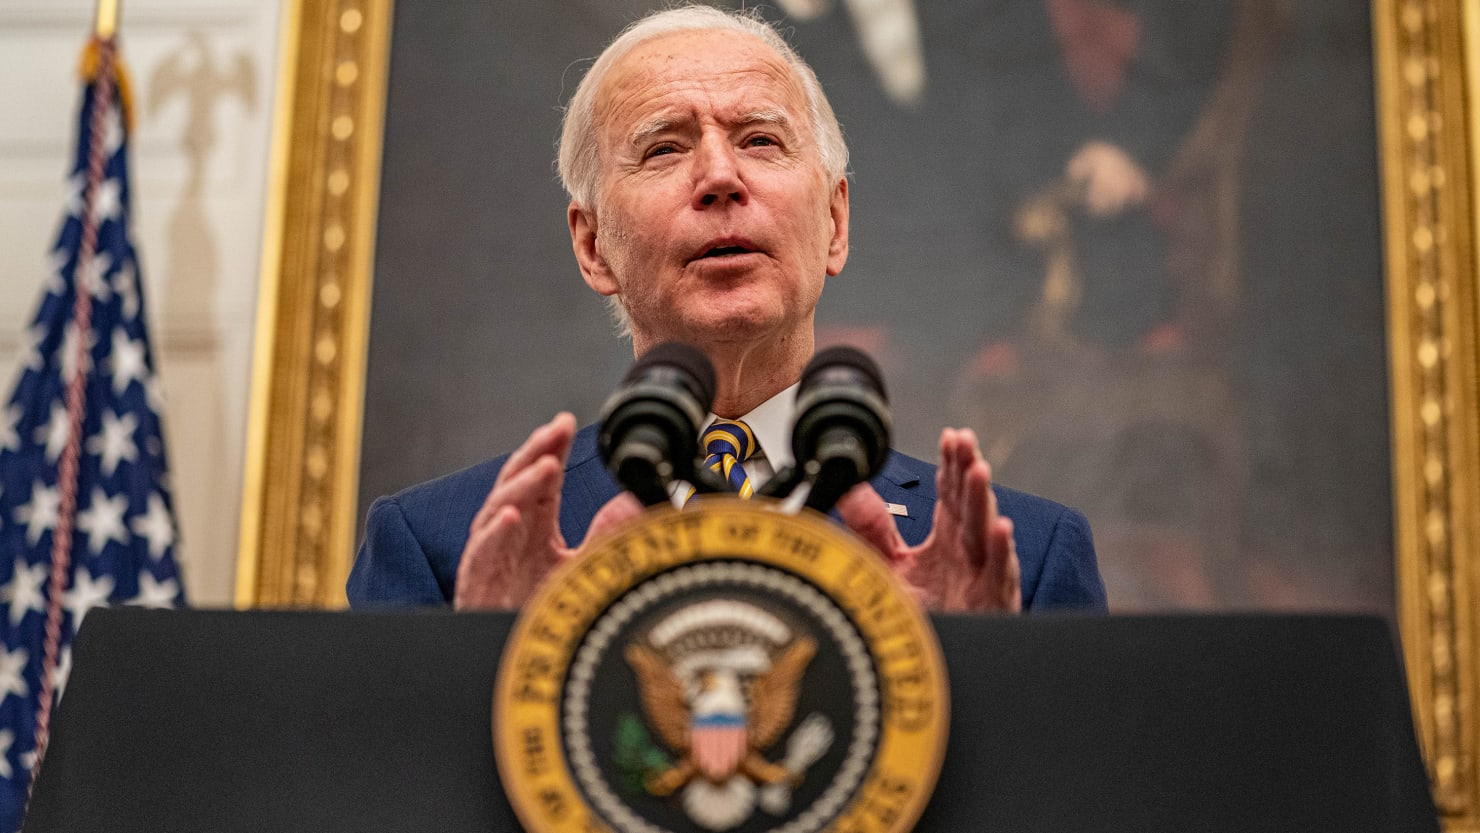 Can Biden Fix the Mess Trump Made of Our Relationship With Iran?